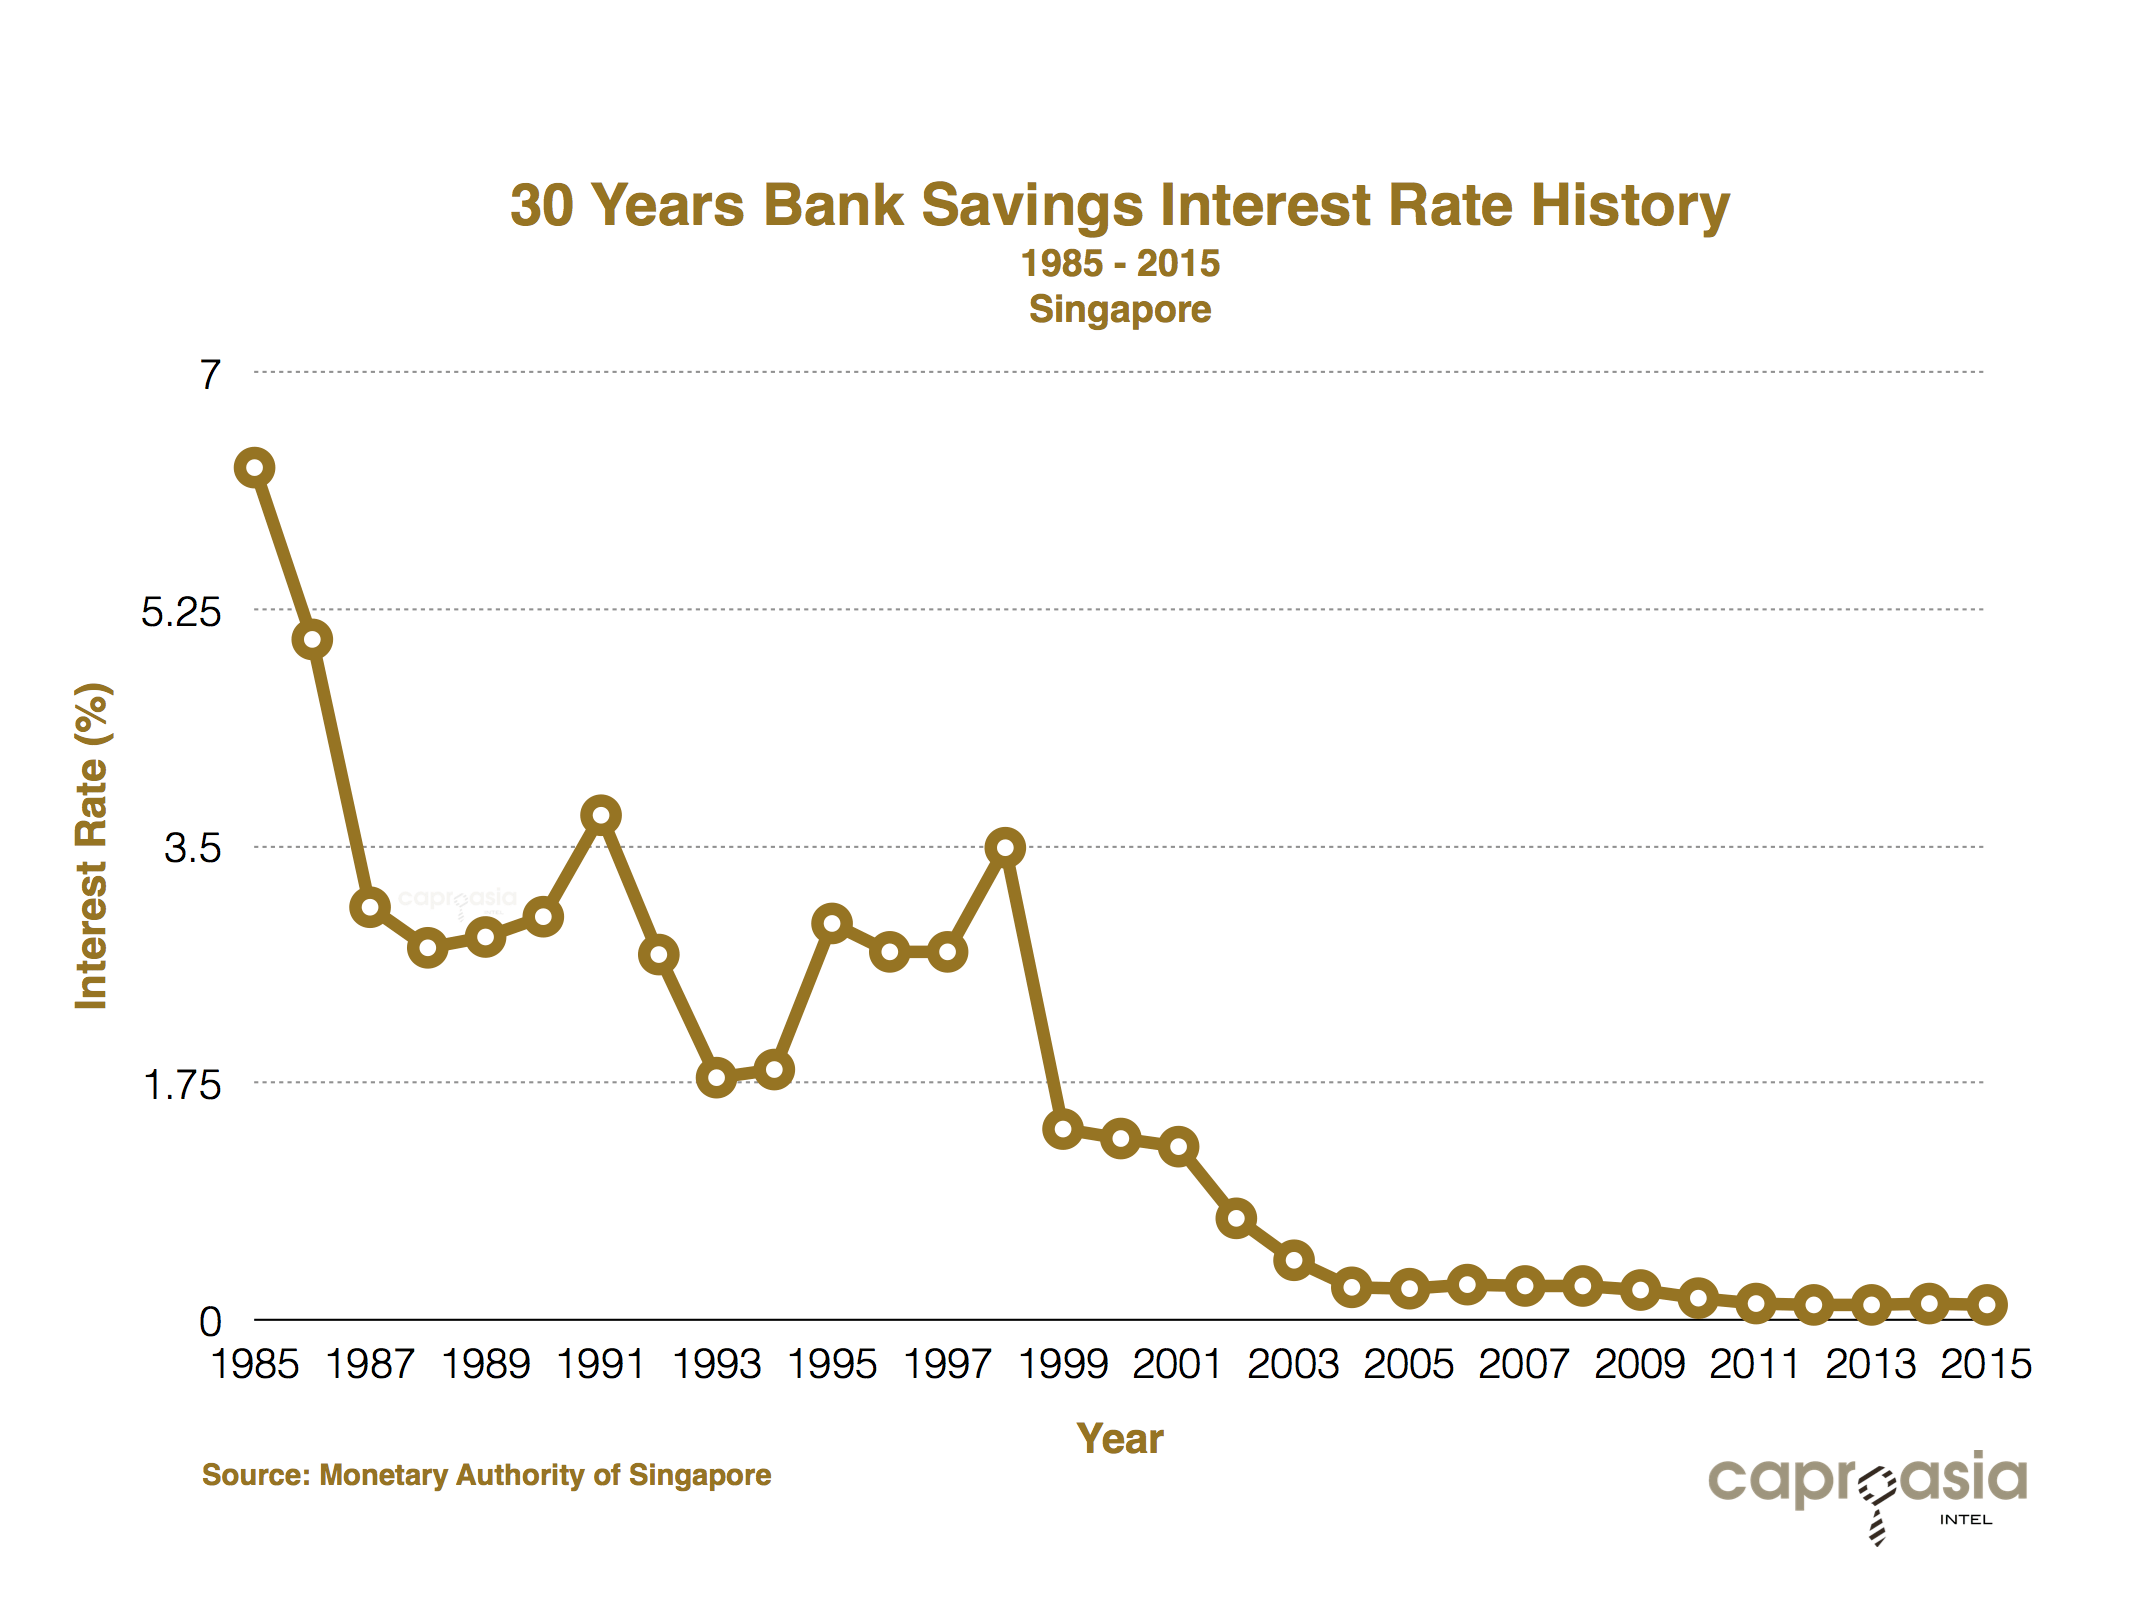 30 Years Bank Savings Interest Rate History Singapore Chart 1985-2015